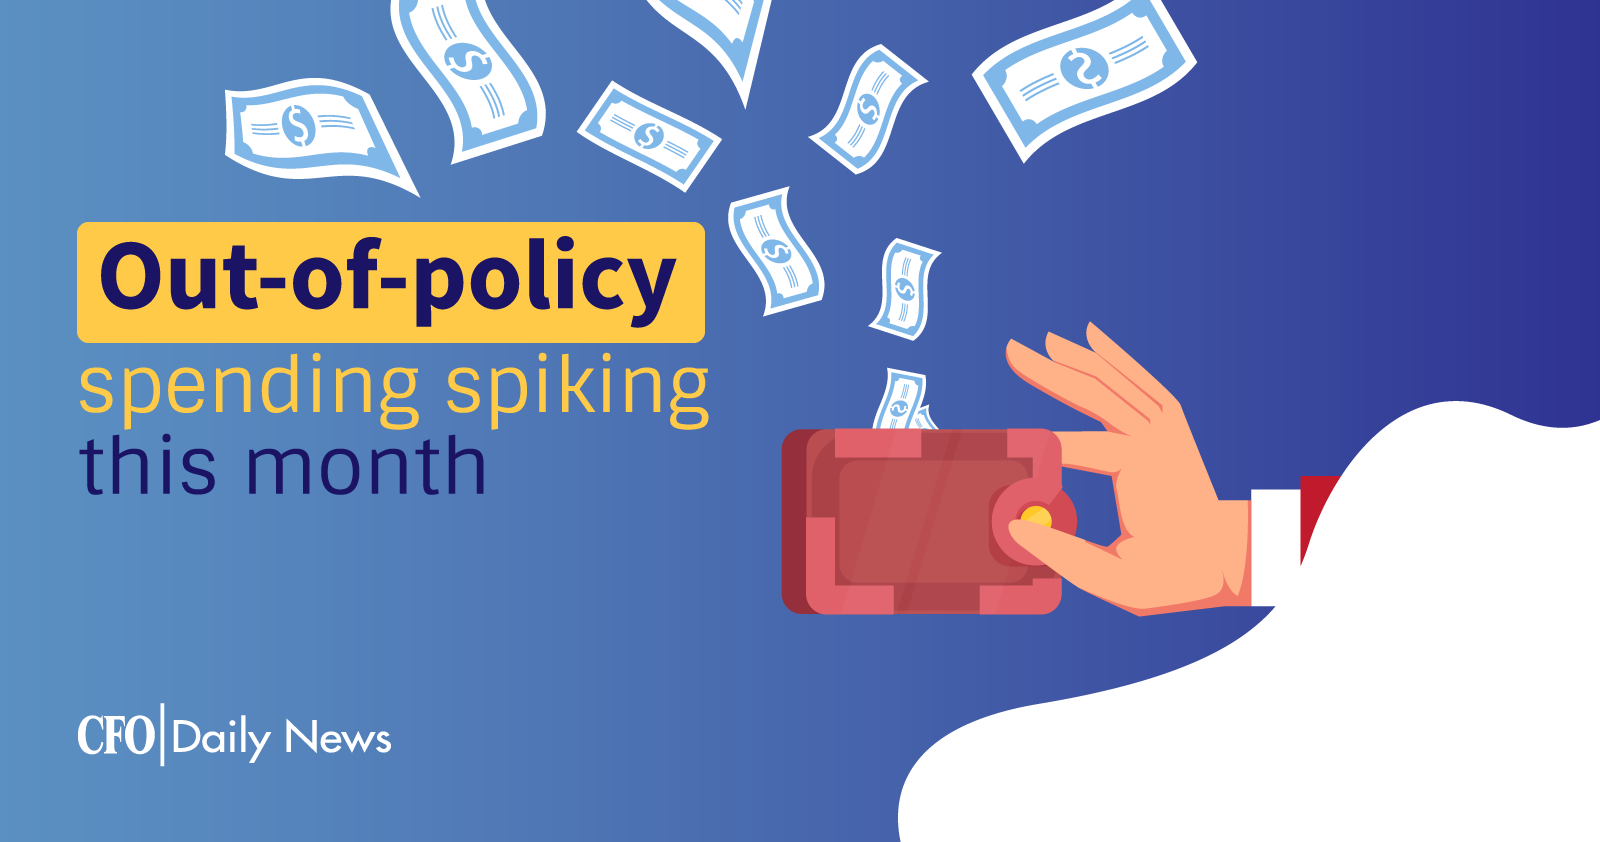 Out-of-policy spending spiking